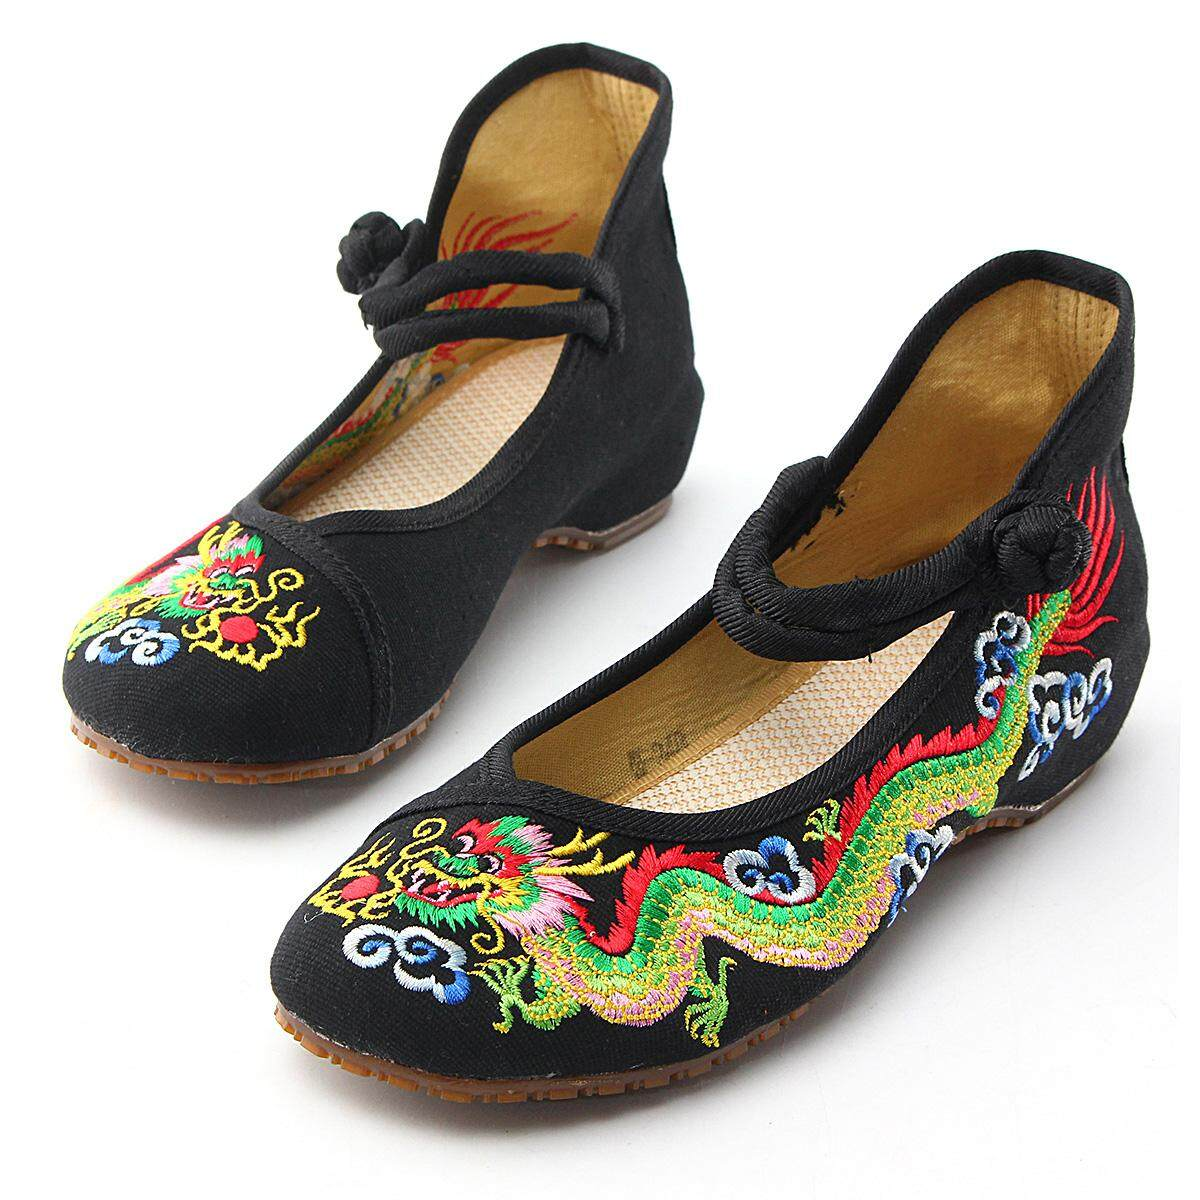 88467d57085 New Retro Women Chinese Embroidered Dragon Flat Shoes Sandals Loafer Mary  Janes